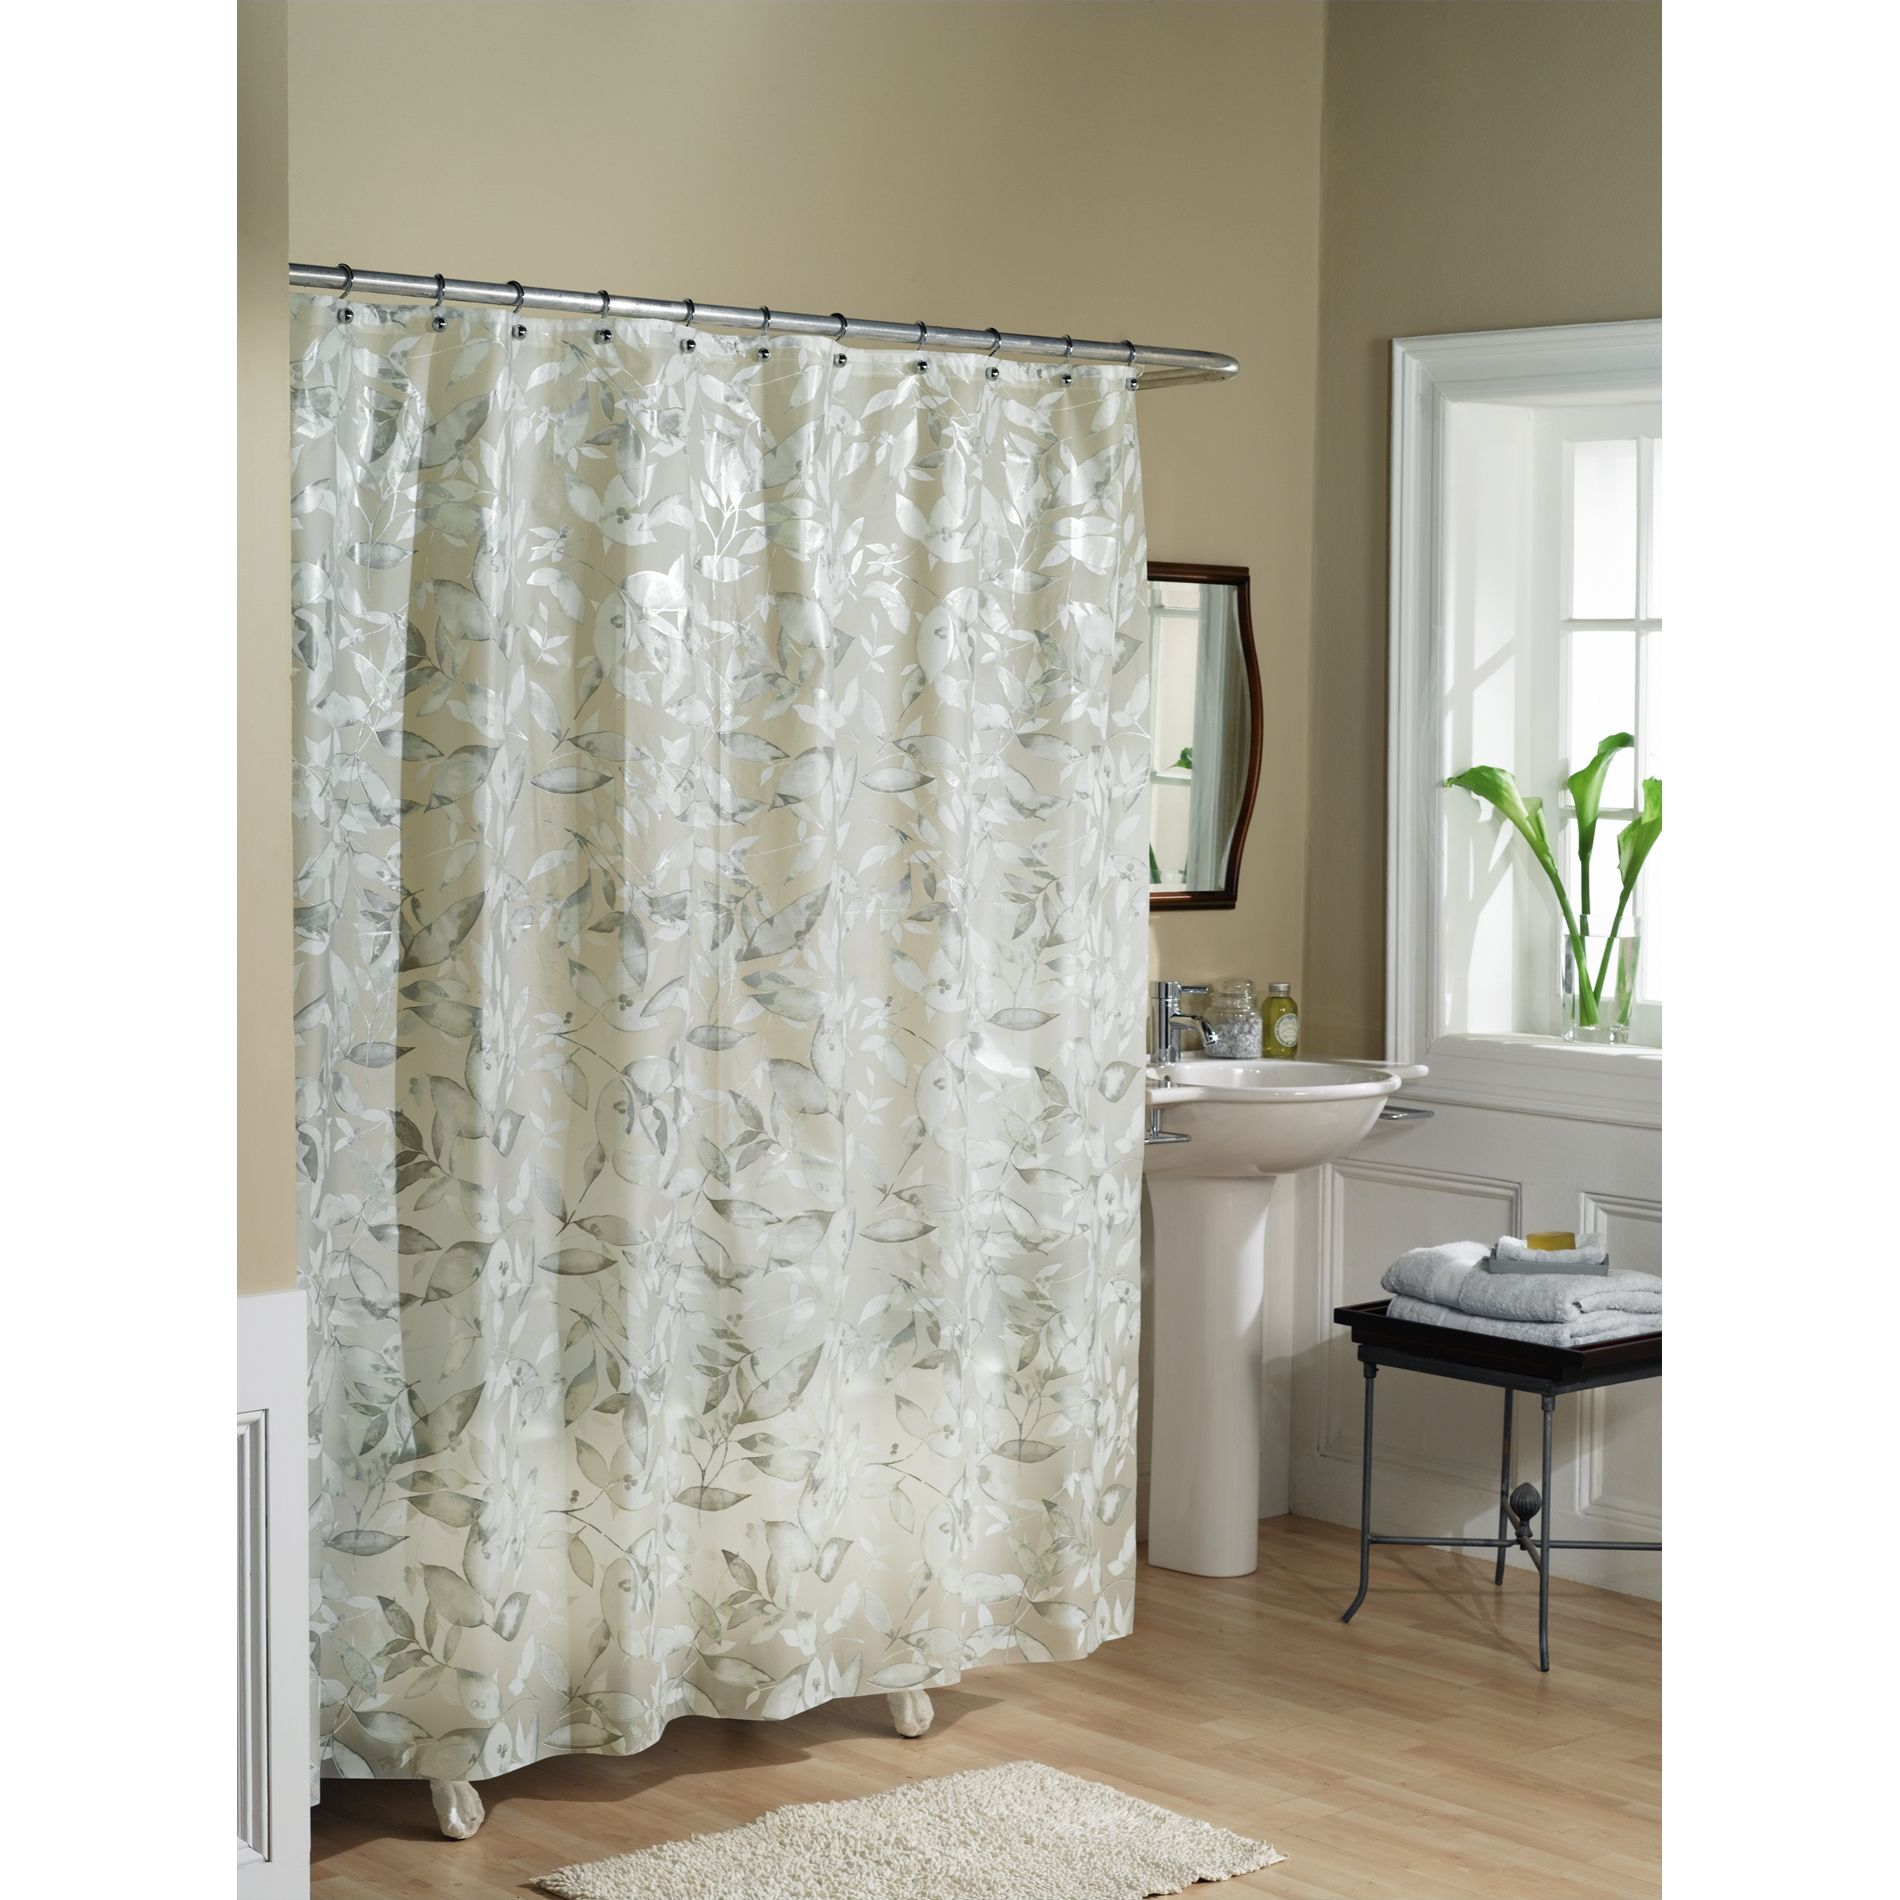 Designs Decorative Patterned White Shower Curtain Mr Shower Door Ideas.  Designs Decorative Patterned White Shower Curtain Mr Shower Door Ideas.